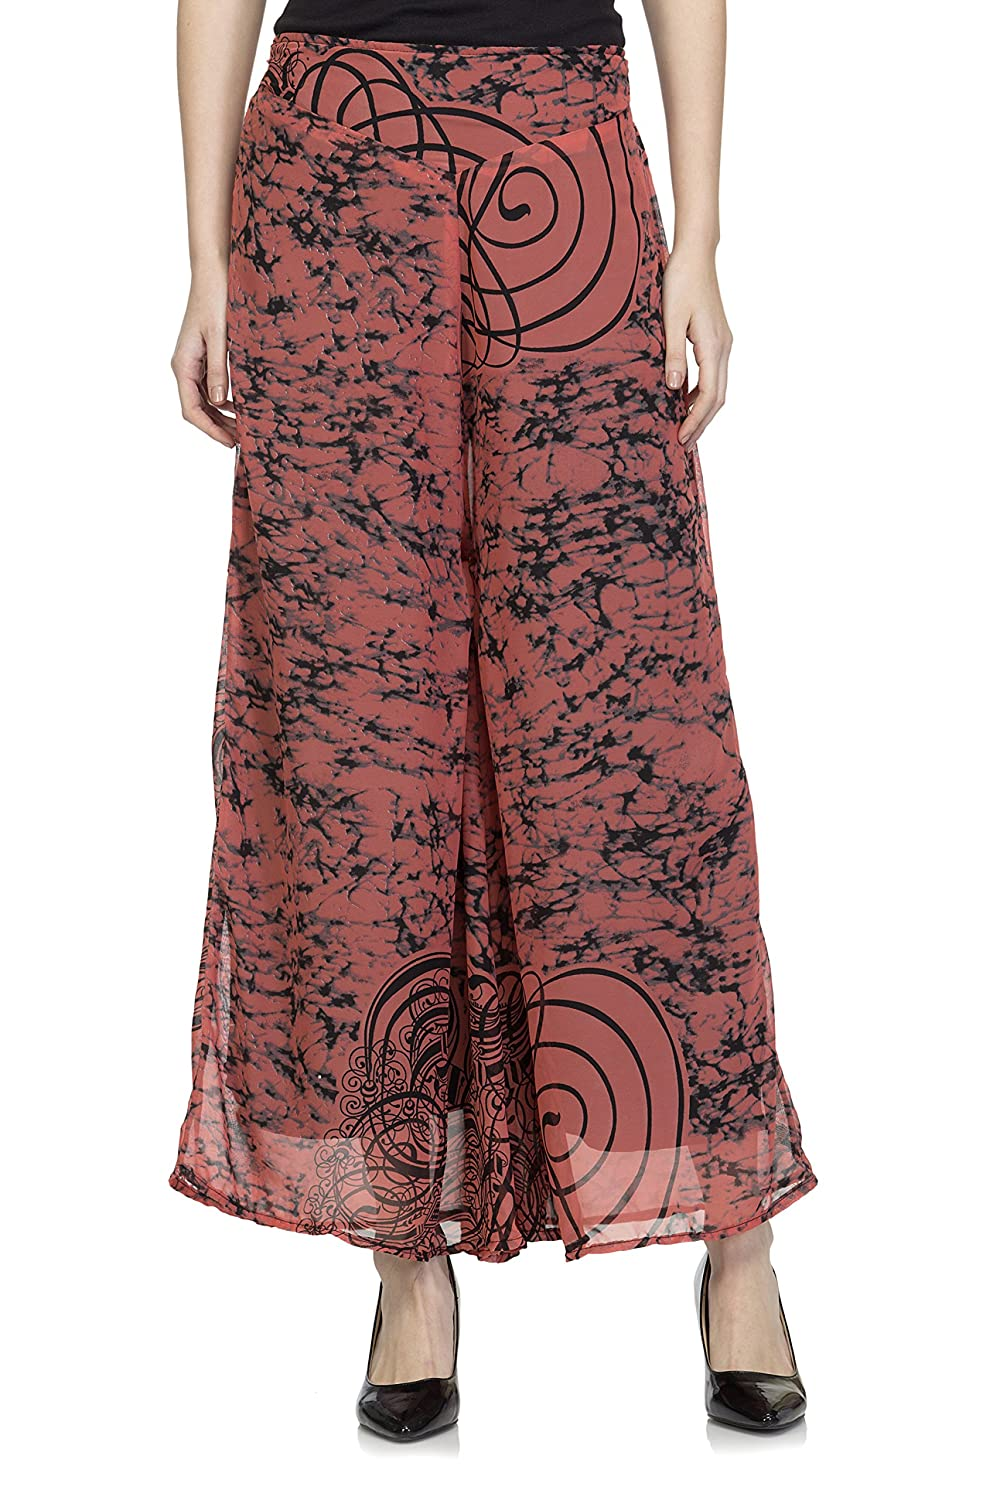 One Femme Women's Printed Palazzo with Wide Flare